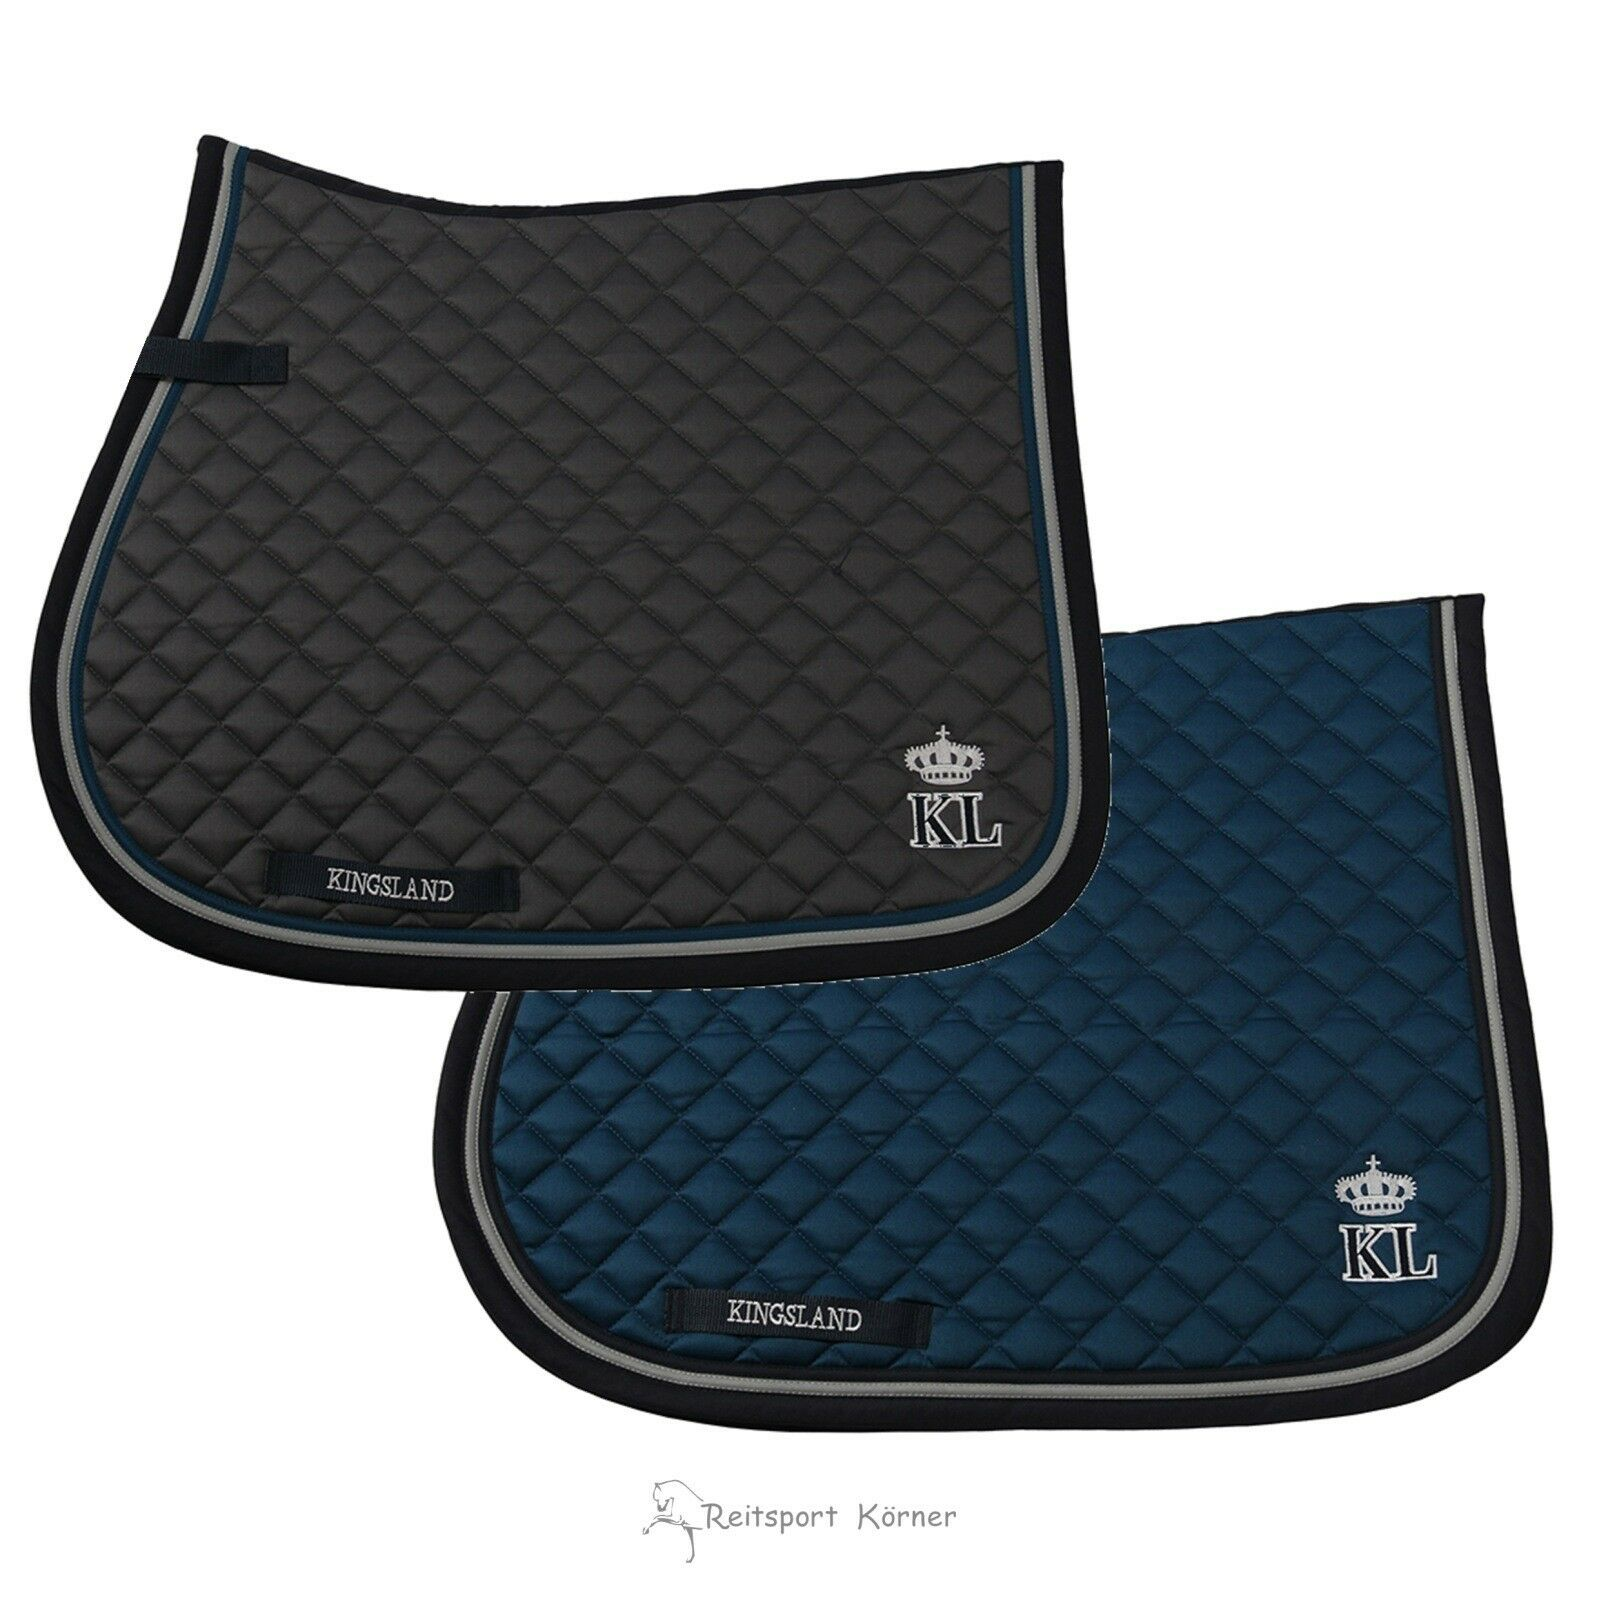 Kingsland decrépita Grove, Saddle Pad con KL-Patch